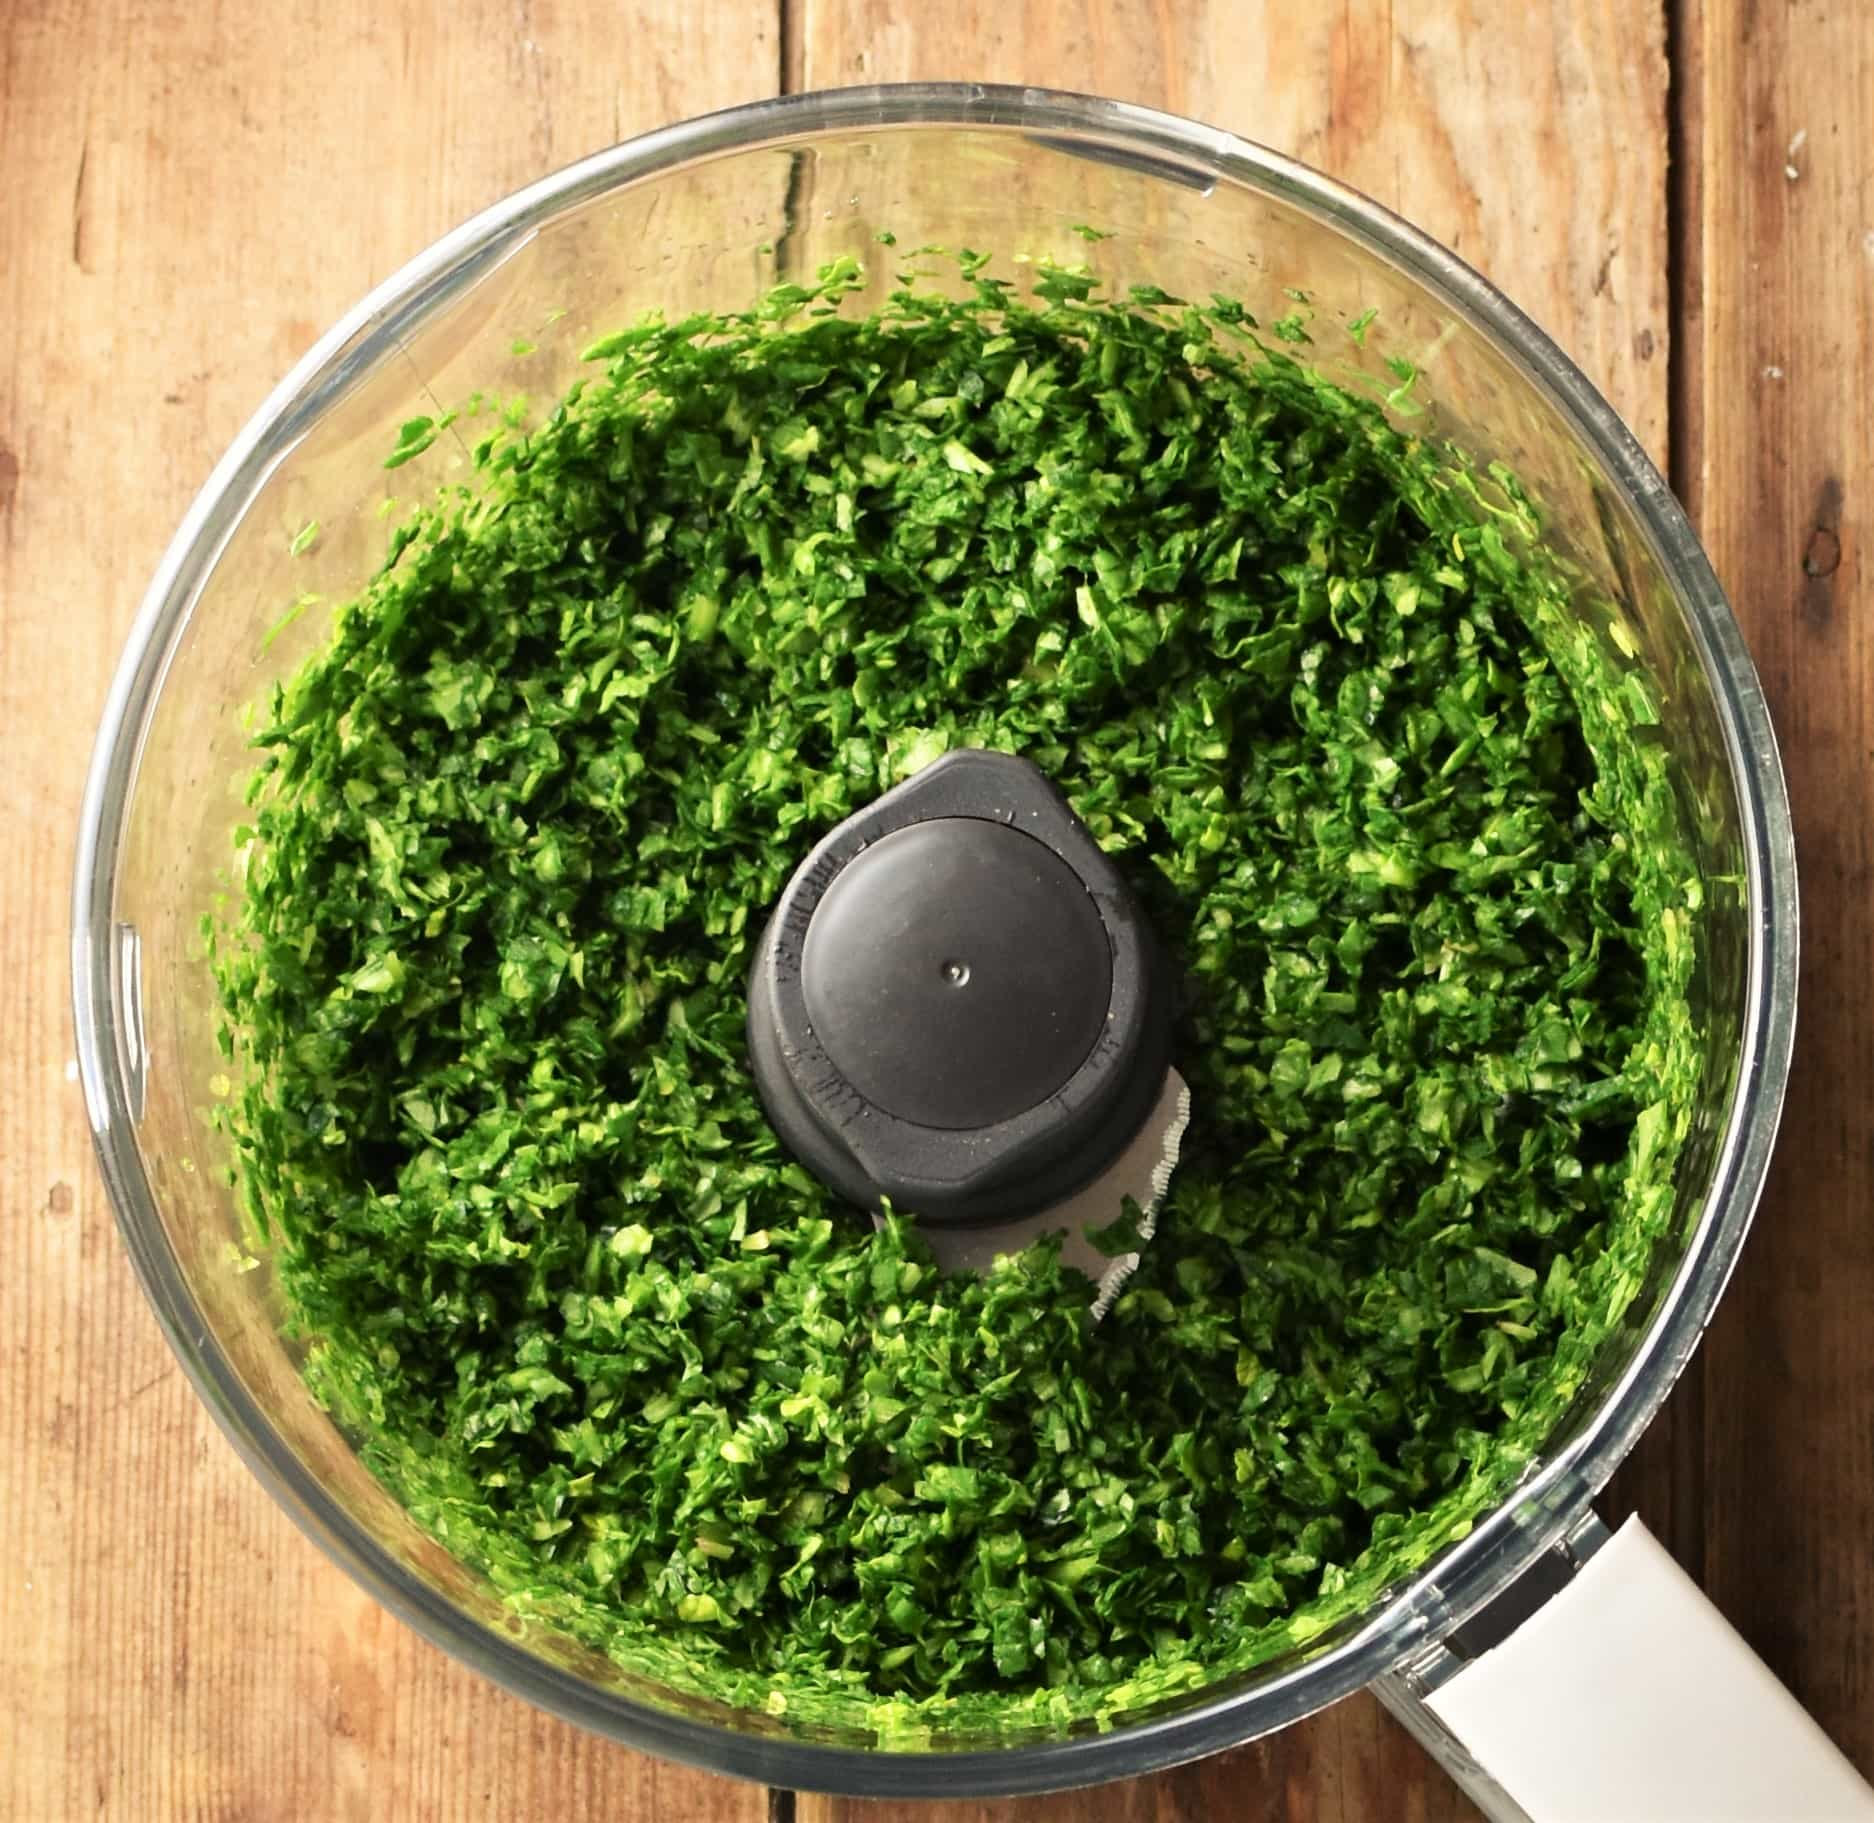 Chopped spinach mixture in blender.